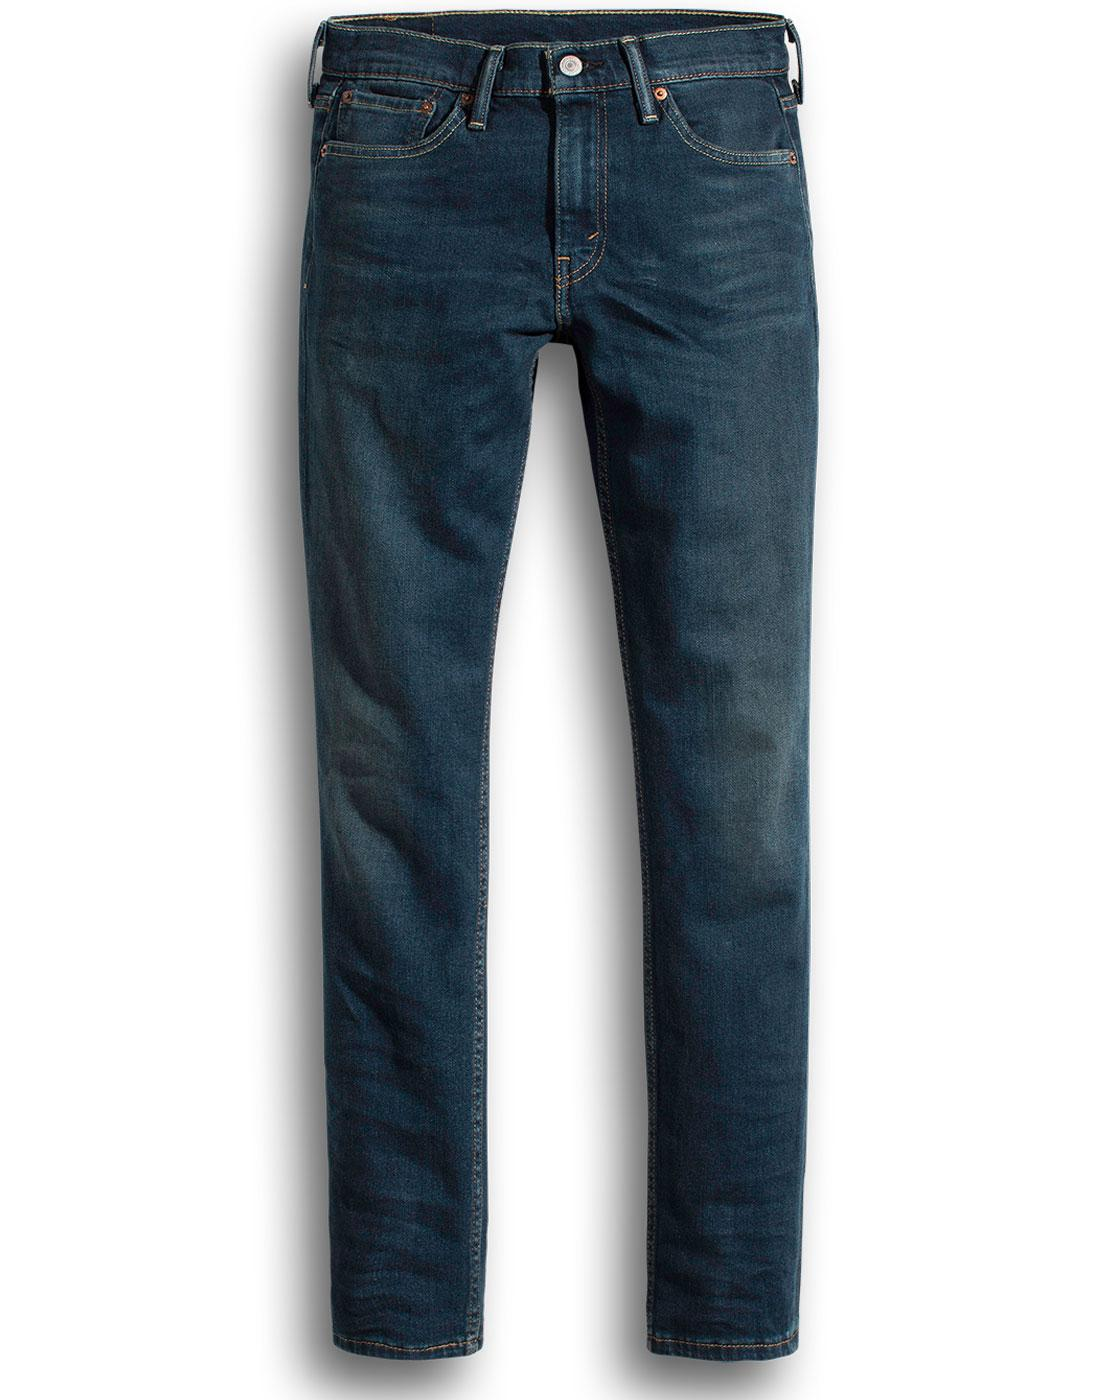 LEVI'S 512 Slim Taper Fit Retro Denim Jeans ROTH